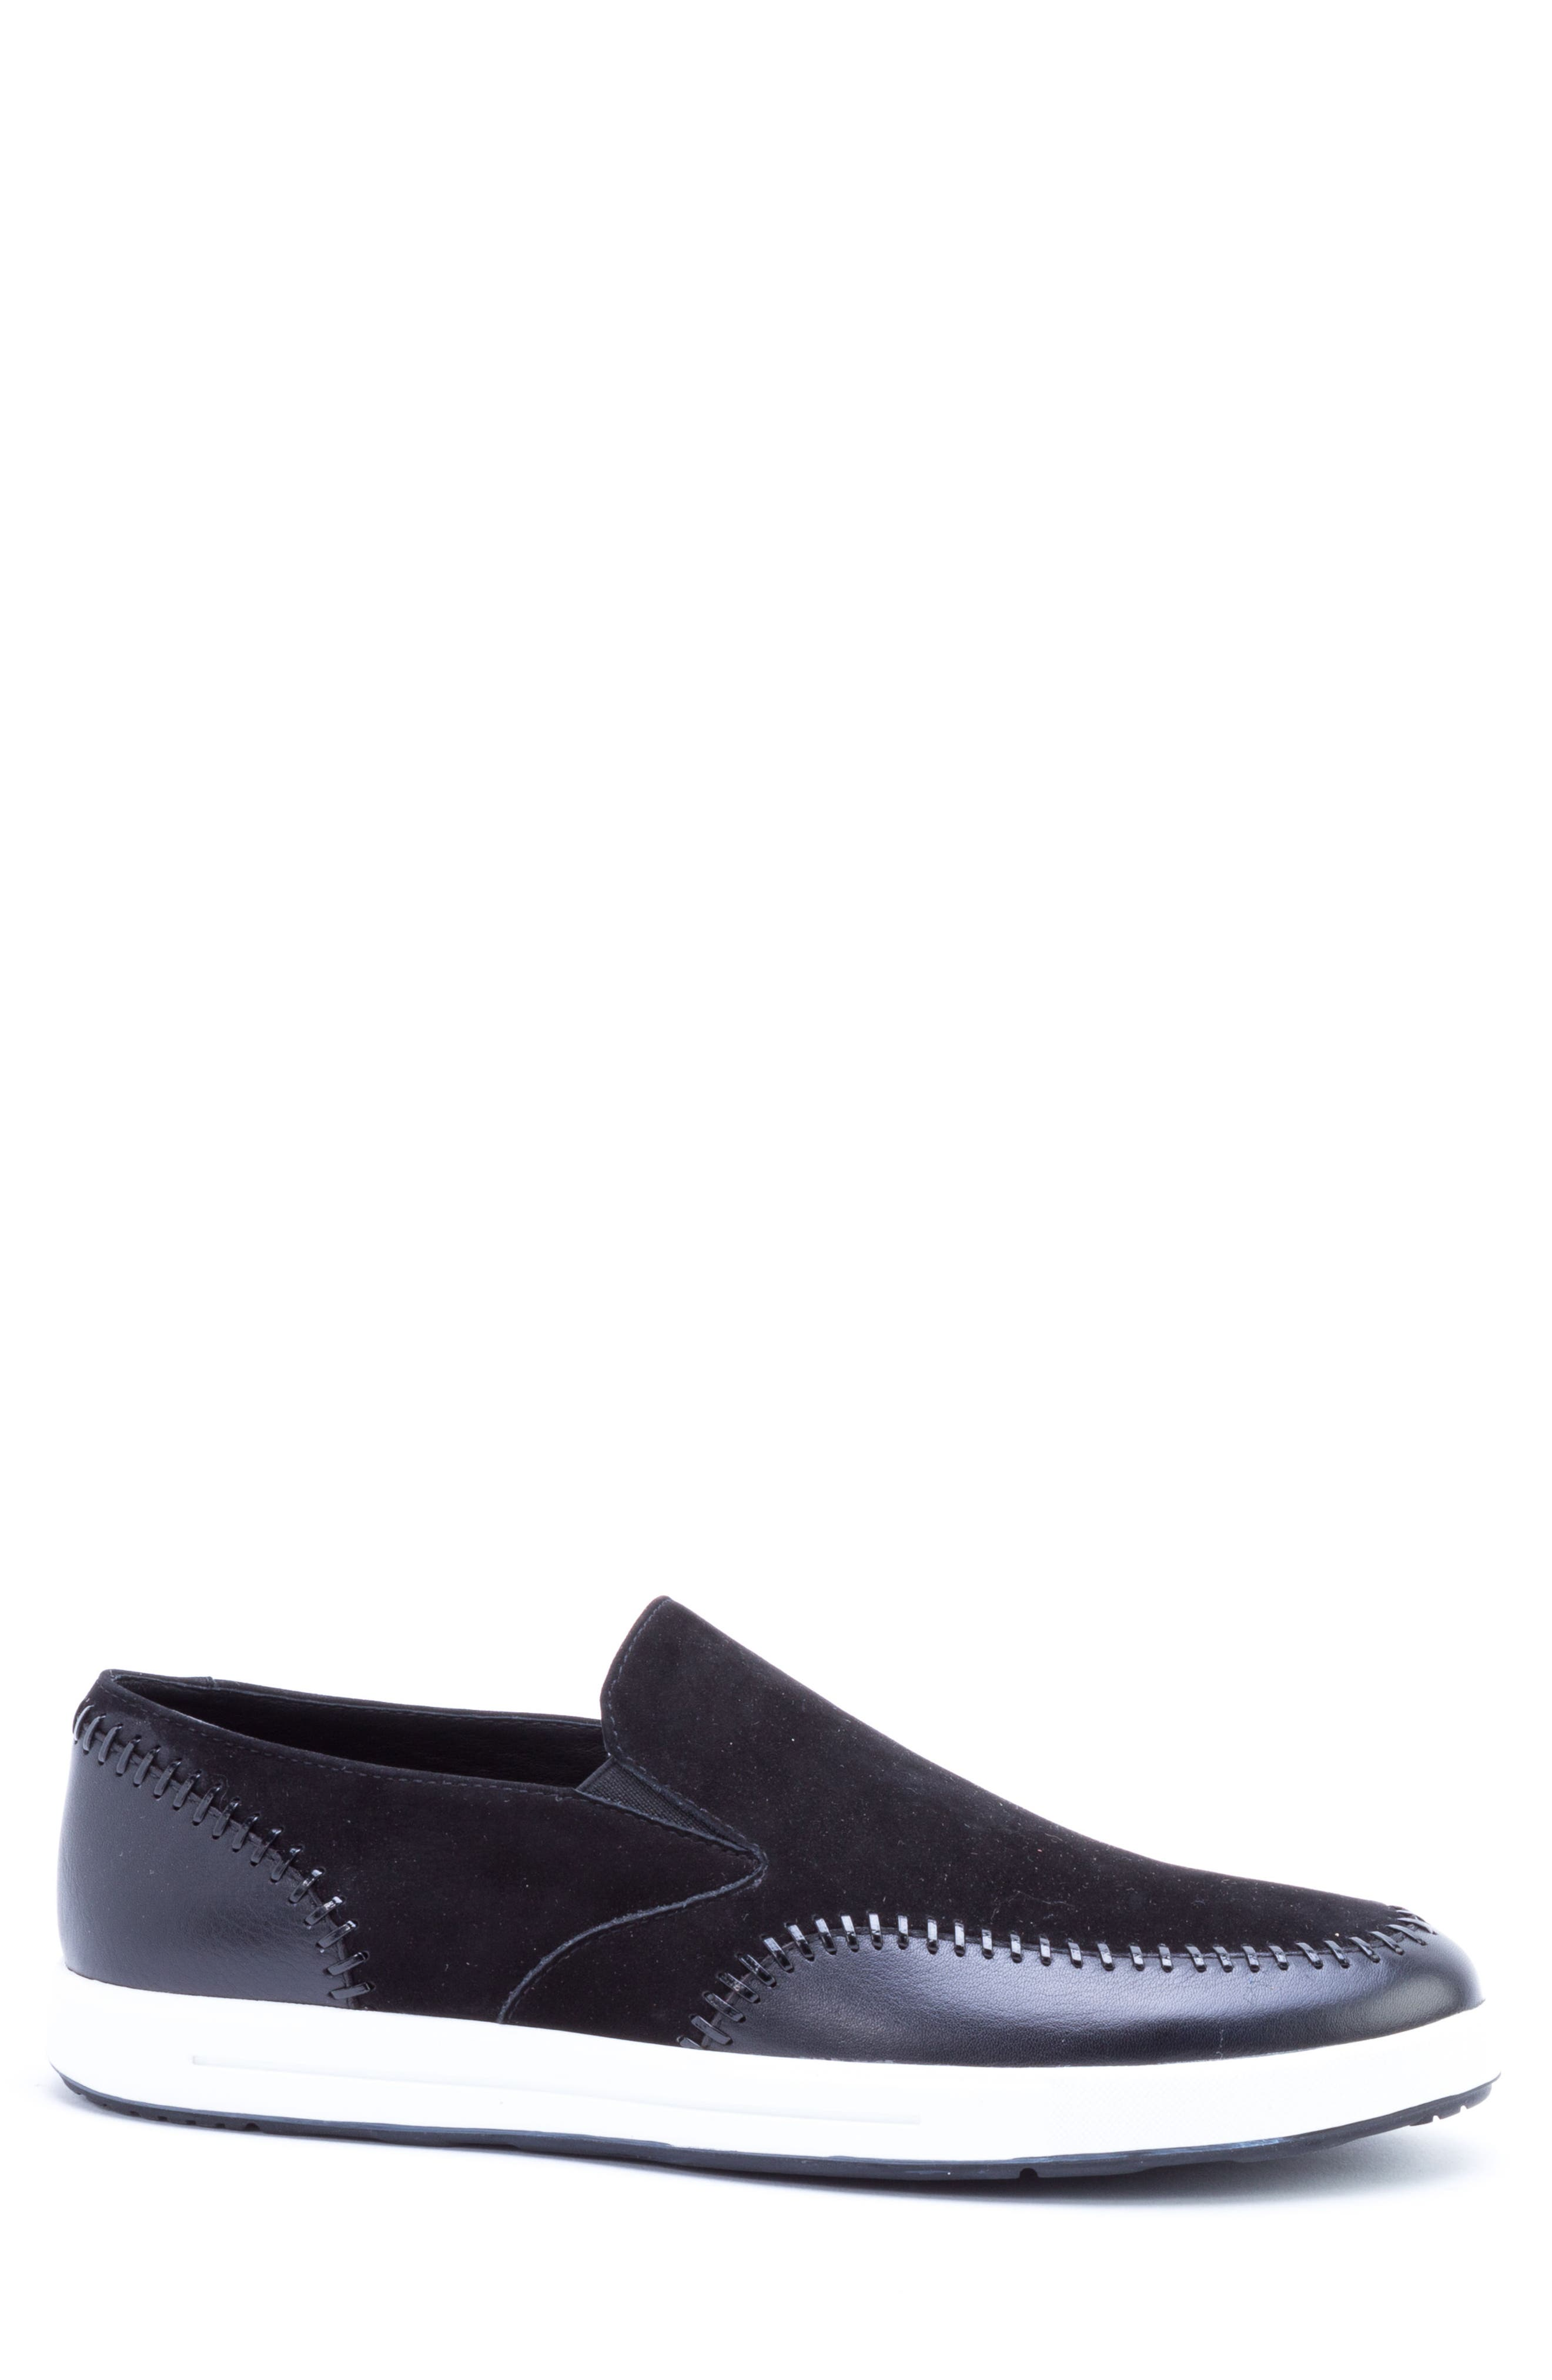 Caravaggio Whipstitched Slip-On Sneaker,                             Alternate thumbnail 3, color,                             BLACK SUEDE/ LEATHER